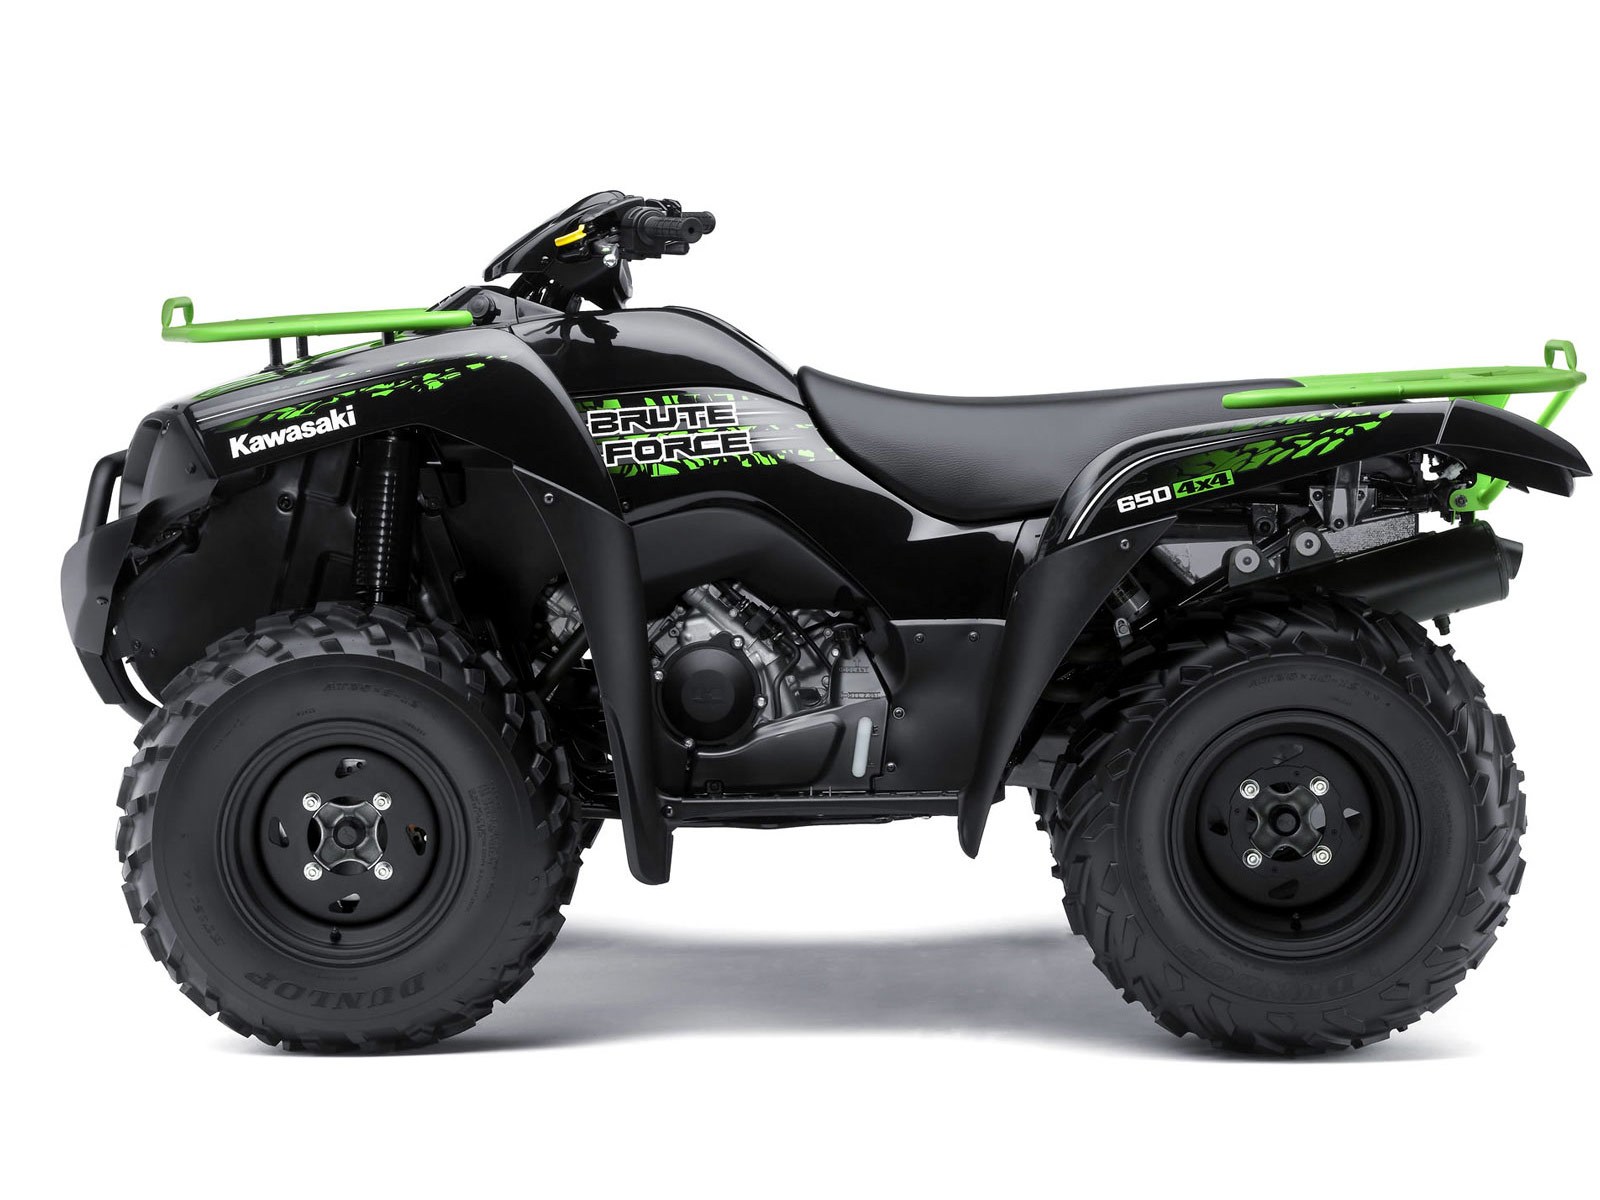 brute force 650 4x4 kawasaki pictures atv accident lawyers. Black Bedroom Furniture Sets. Home Design Ideas